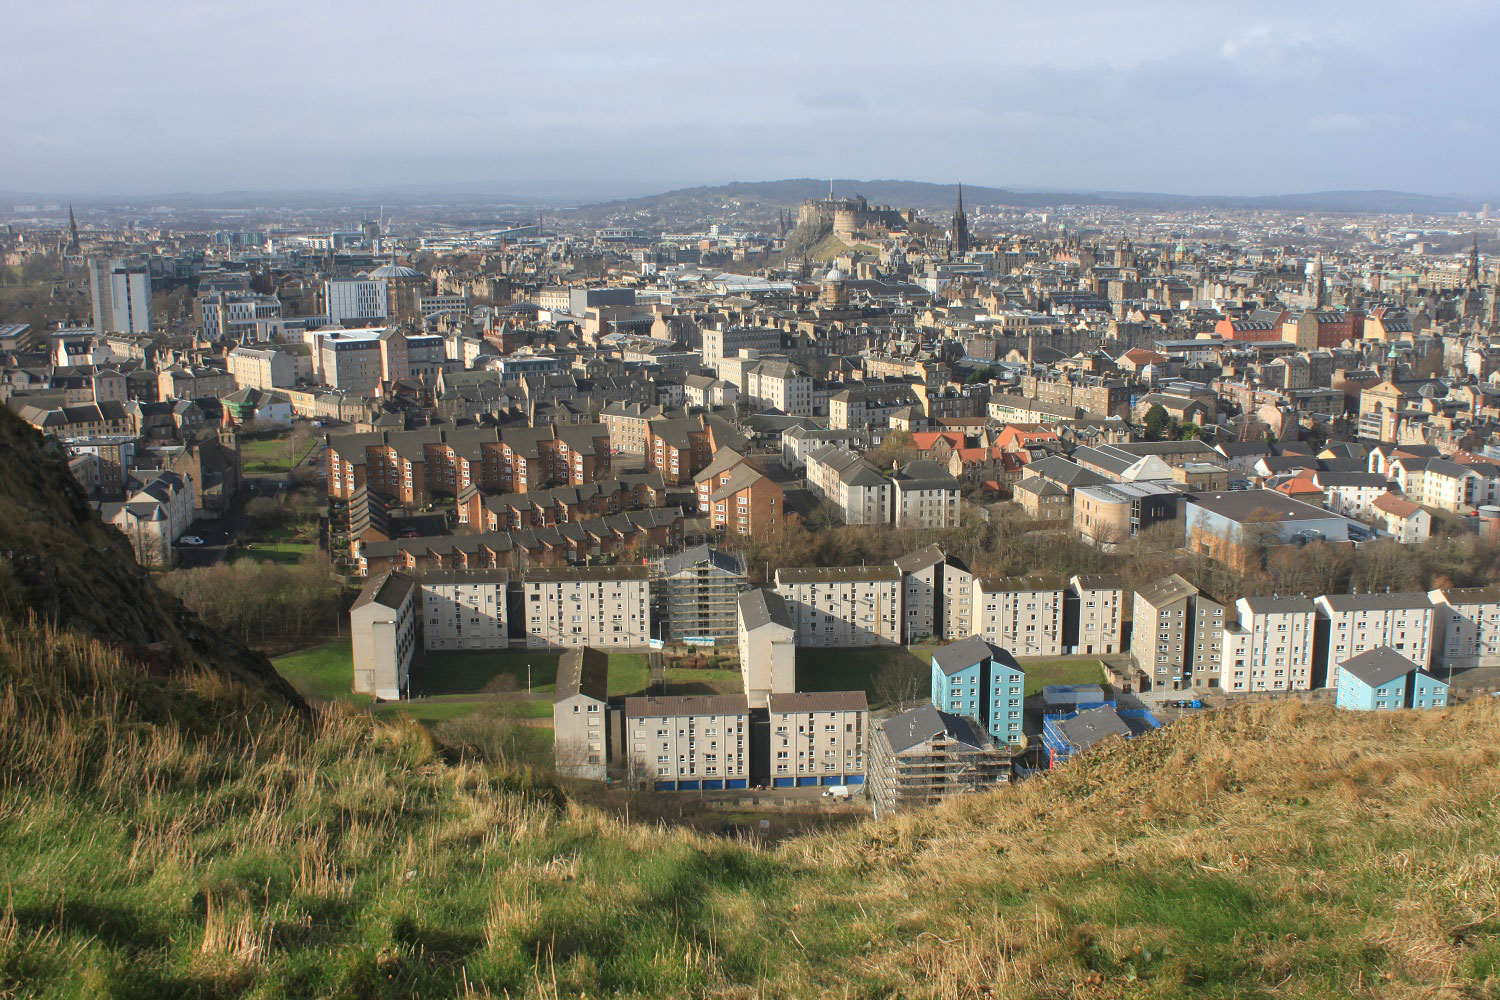 View from King Arthur's Seat